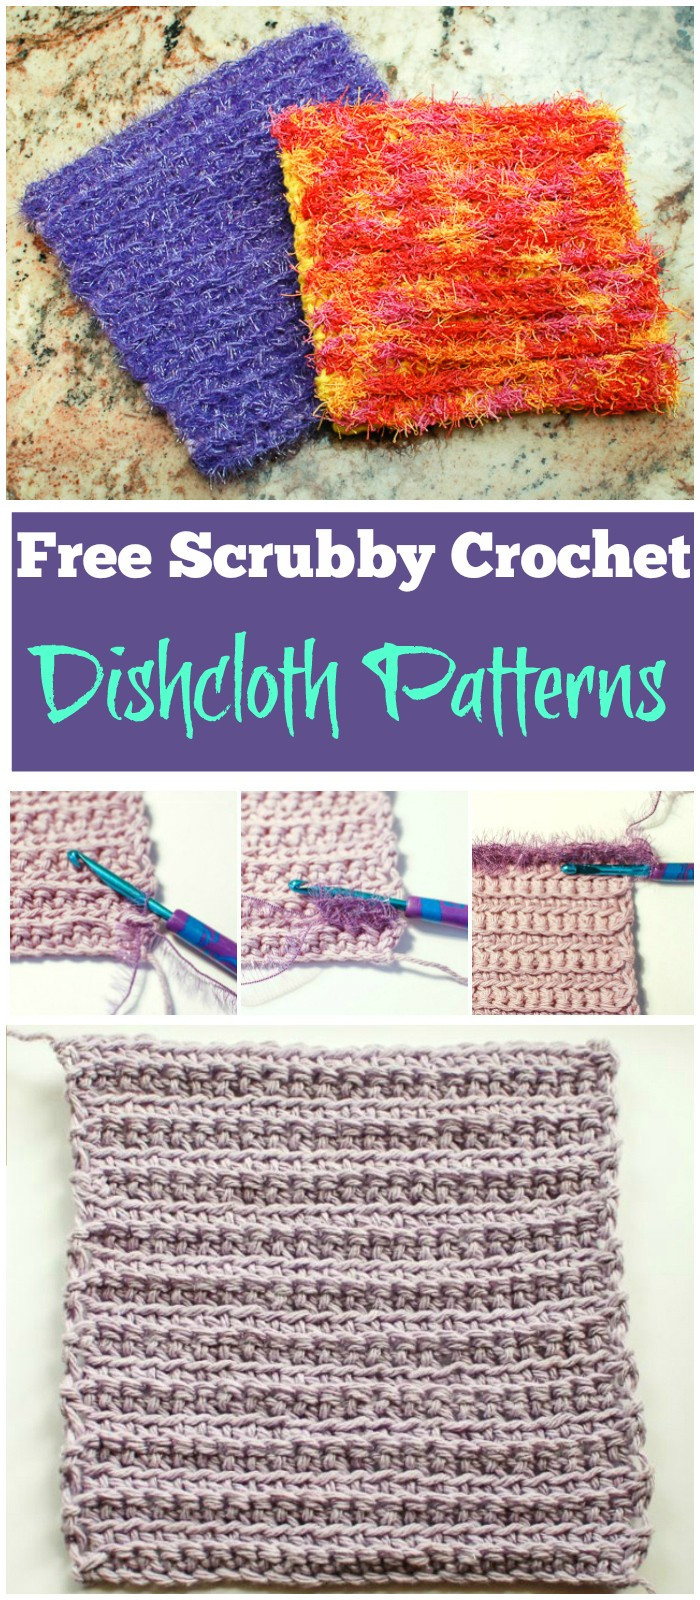 Scrubby Dishcloth Pattern Beautiful Crochet Dishcloth Patterns to Beautify Your Kitchen • Diy Of Contemporary 35 Pics Scrubby Dishcloth Pattern